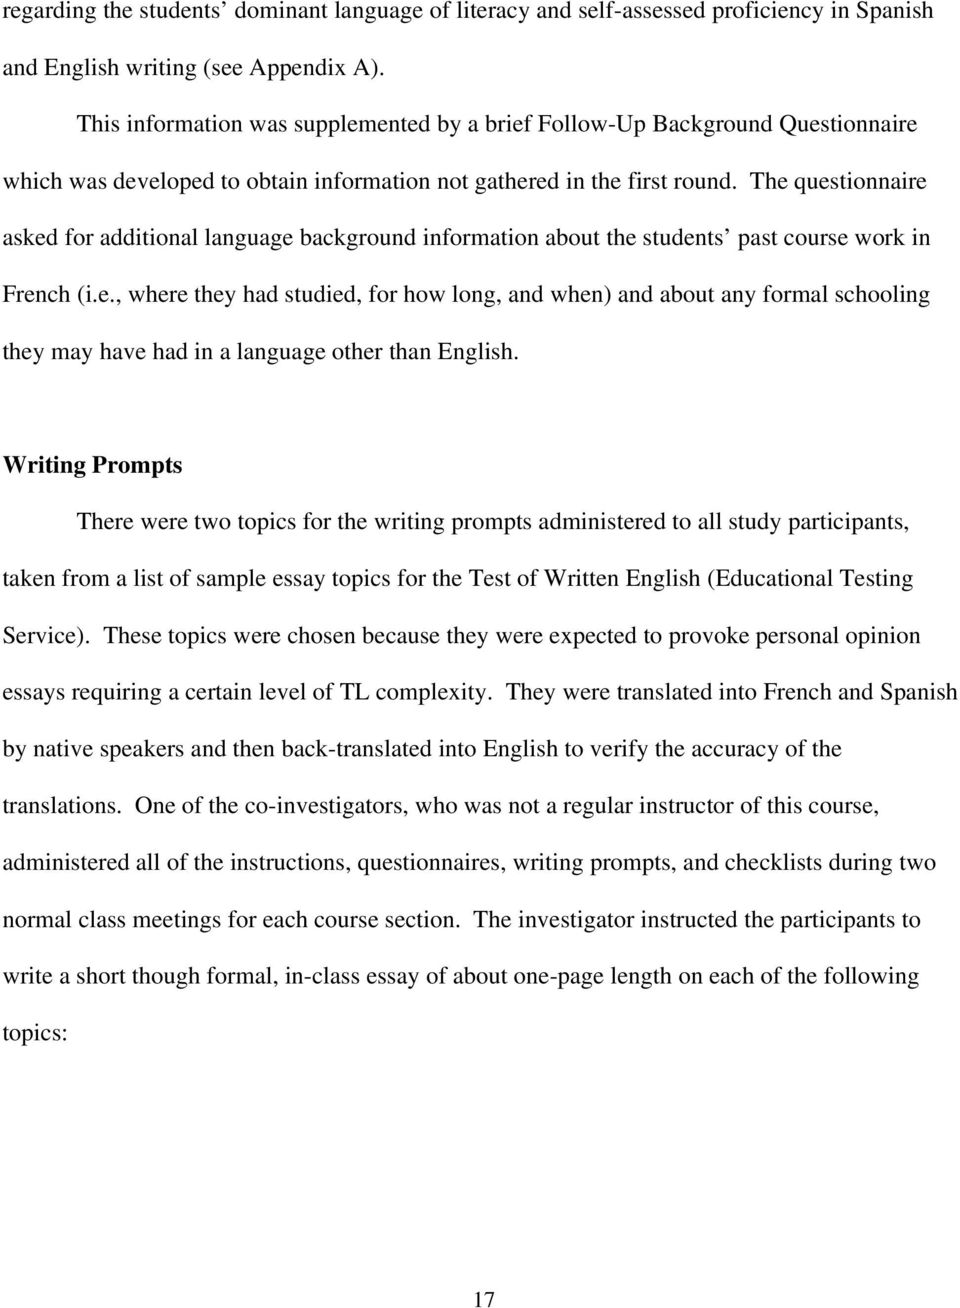 french language essay topics informative essay topics college ideas for definition essays informative essay topics college ideas for definition essays